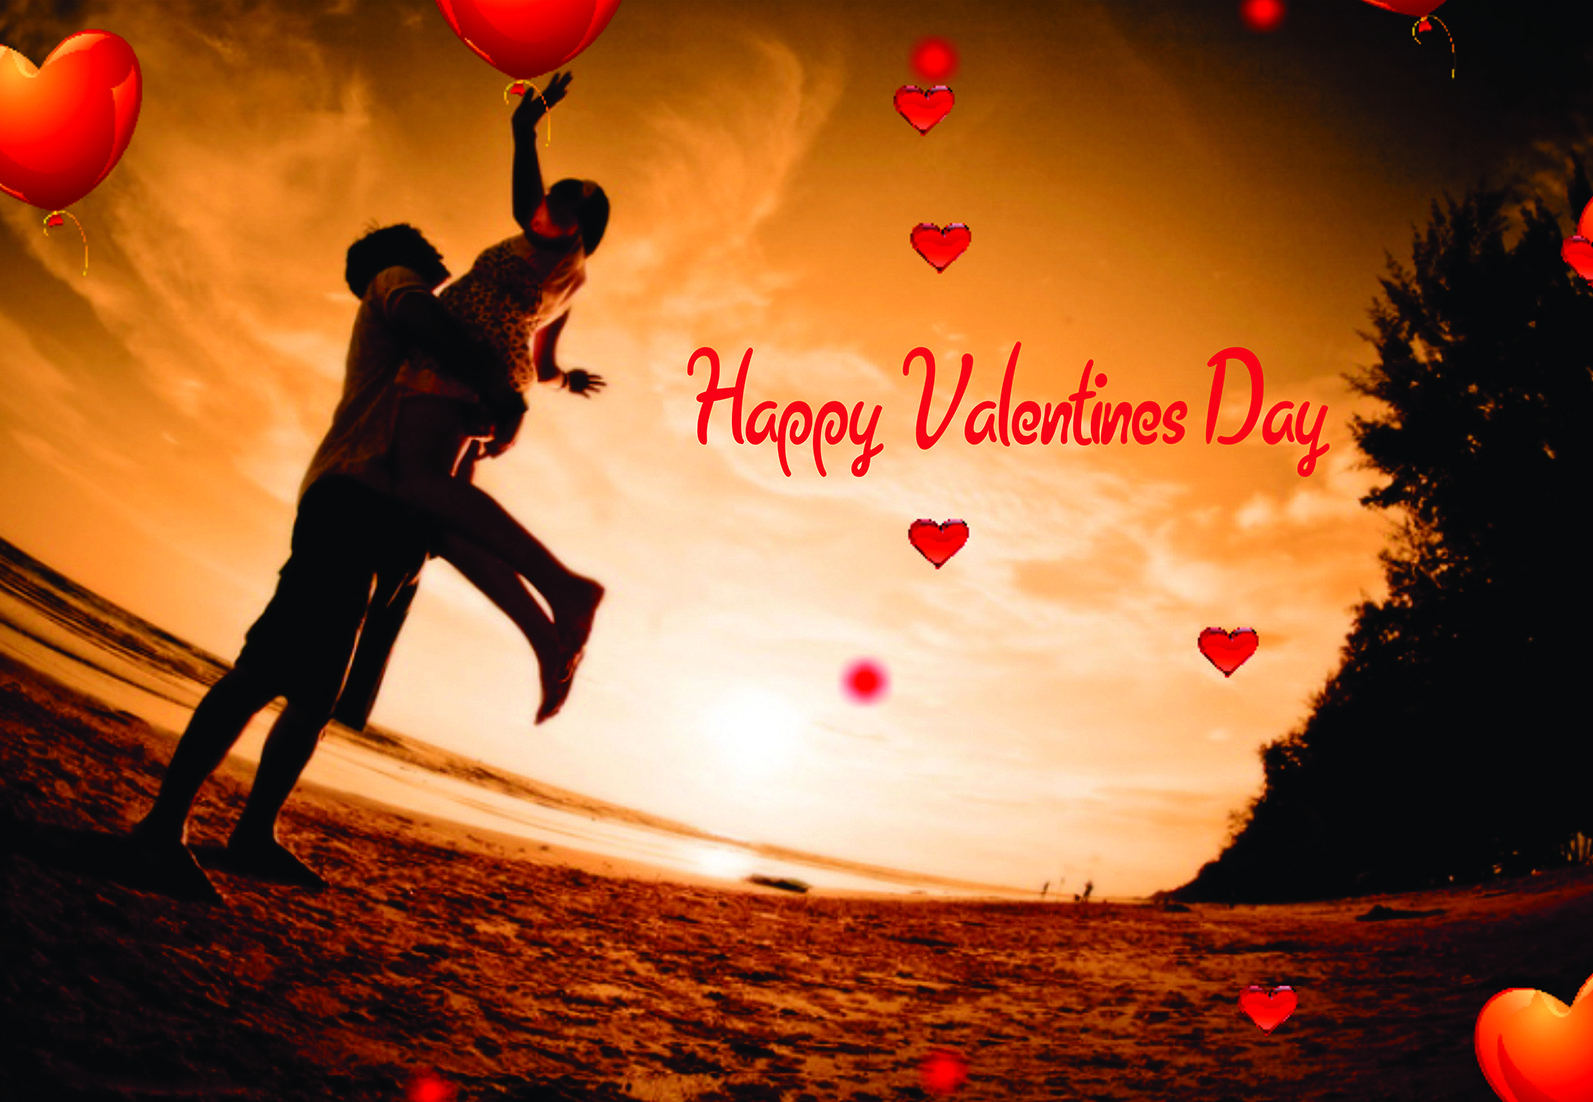 Love Wallpaper cool : Valentine s Day HD Wallpaper